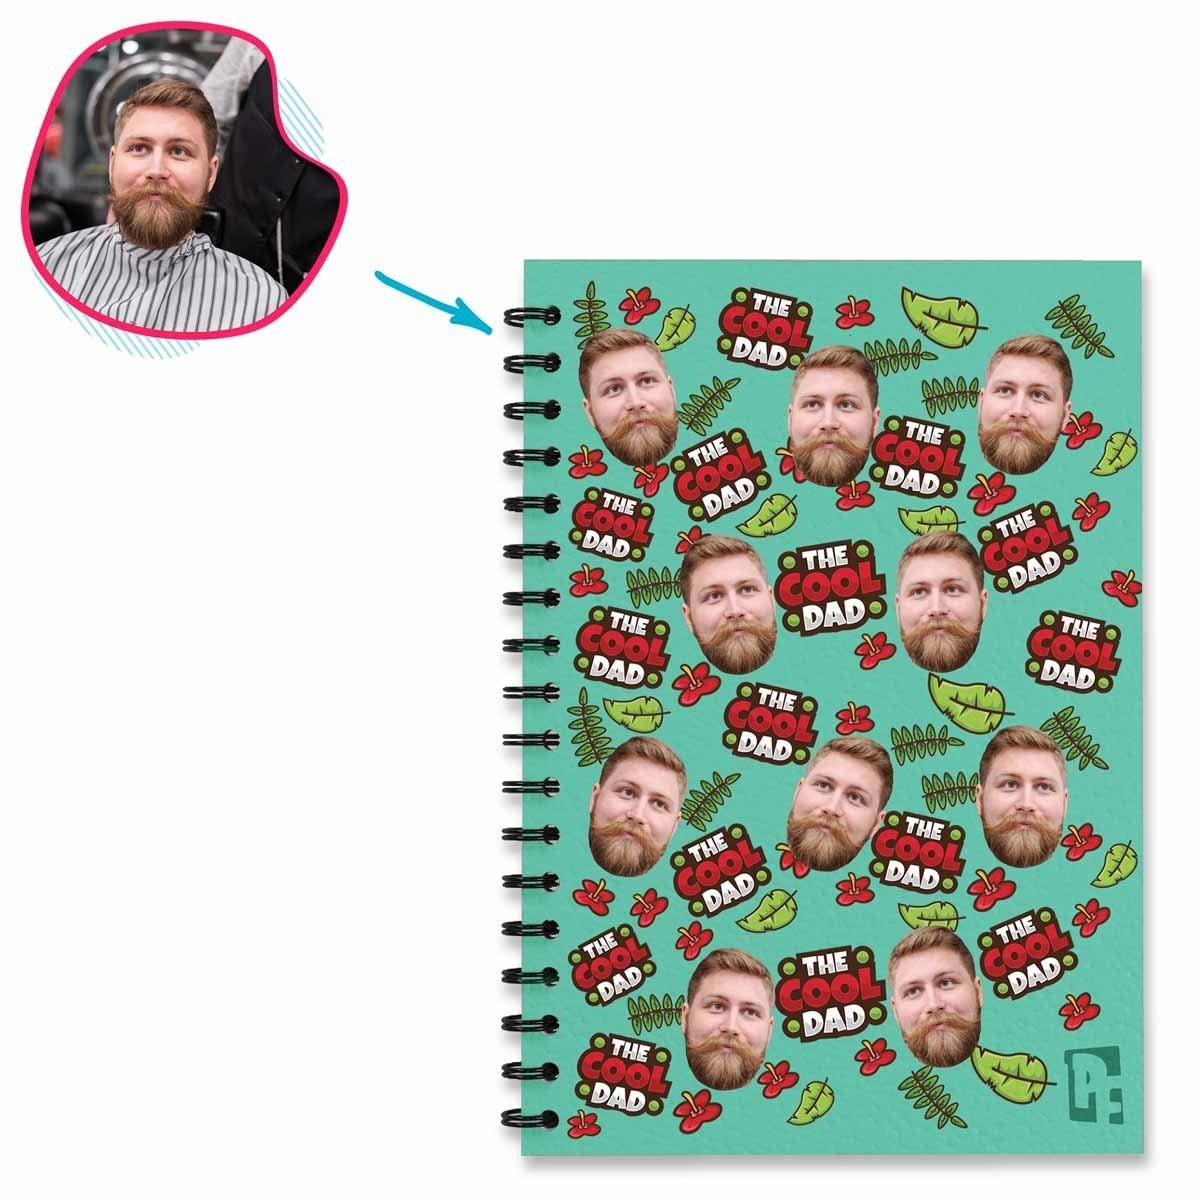 mint The Cool Dad Notebook personalized with photo of face printed on them